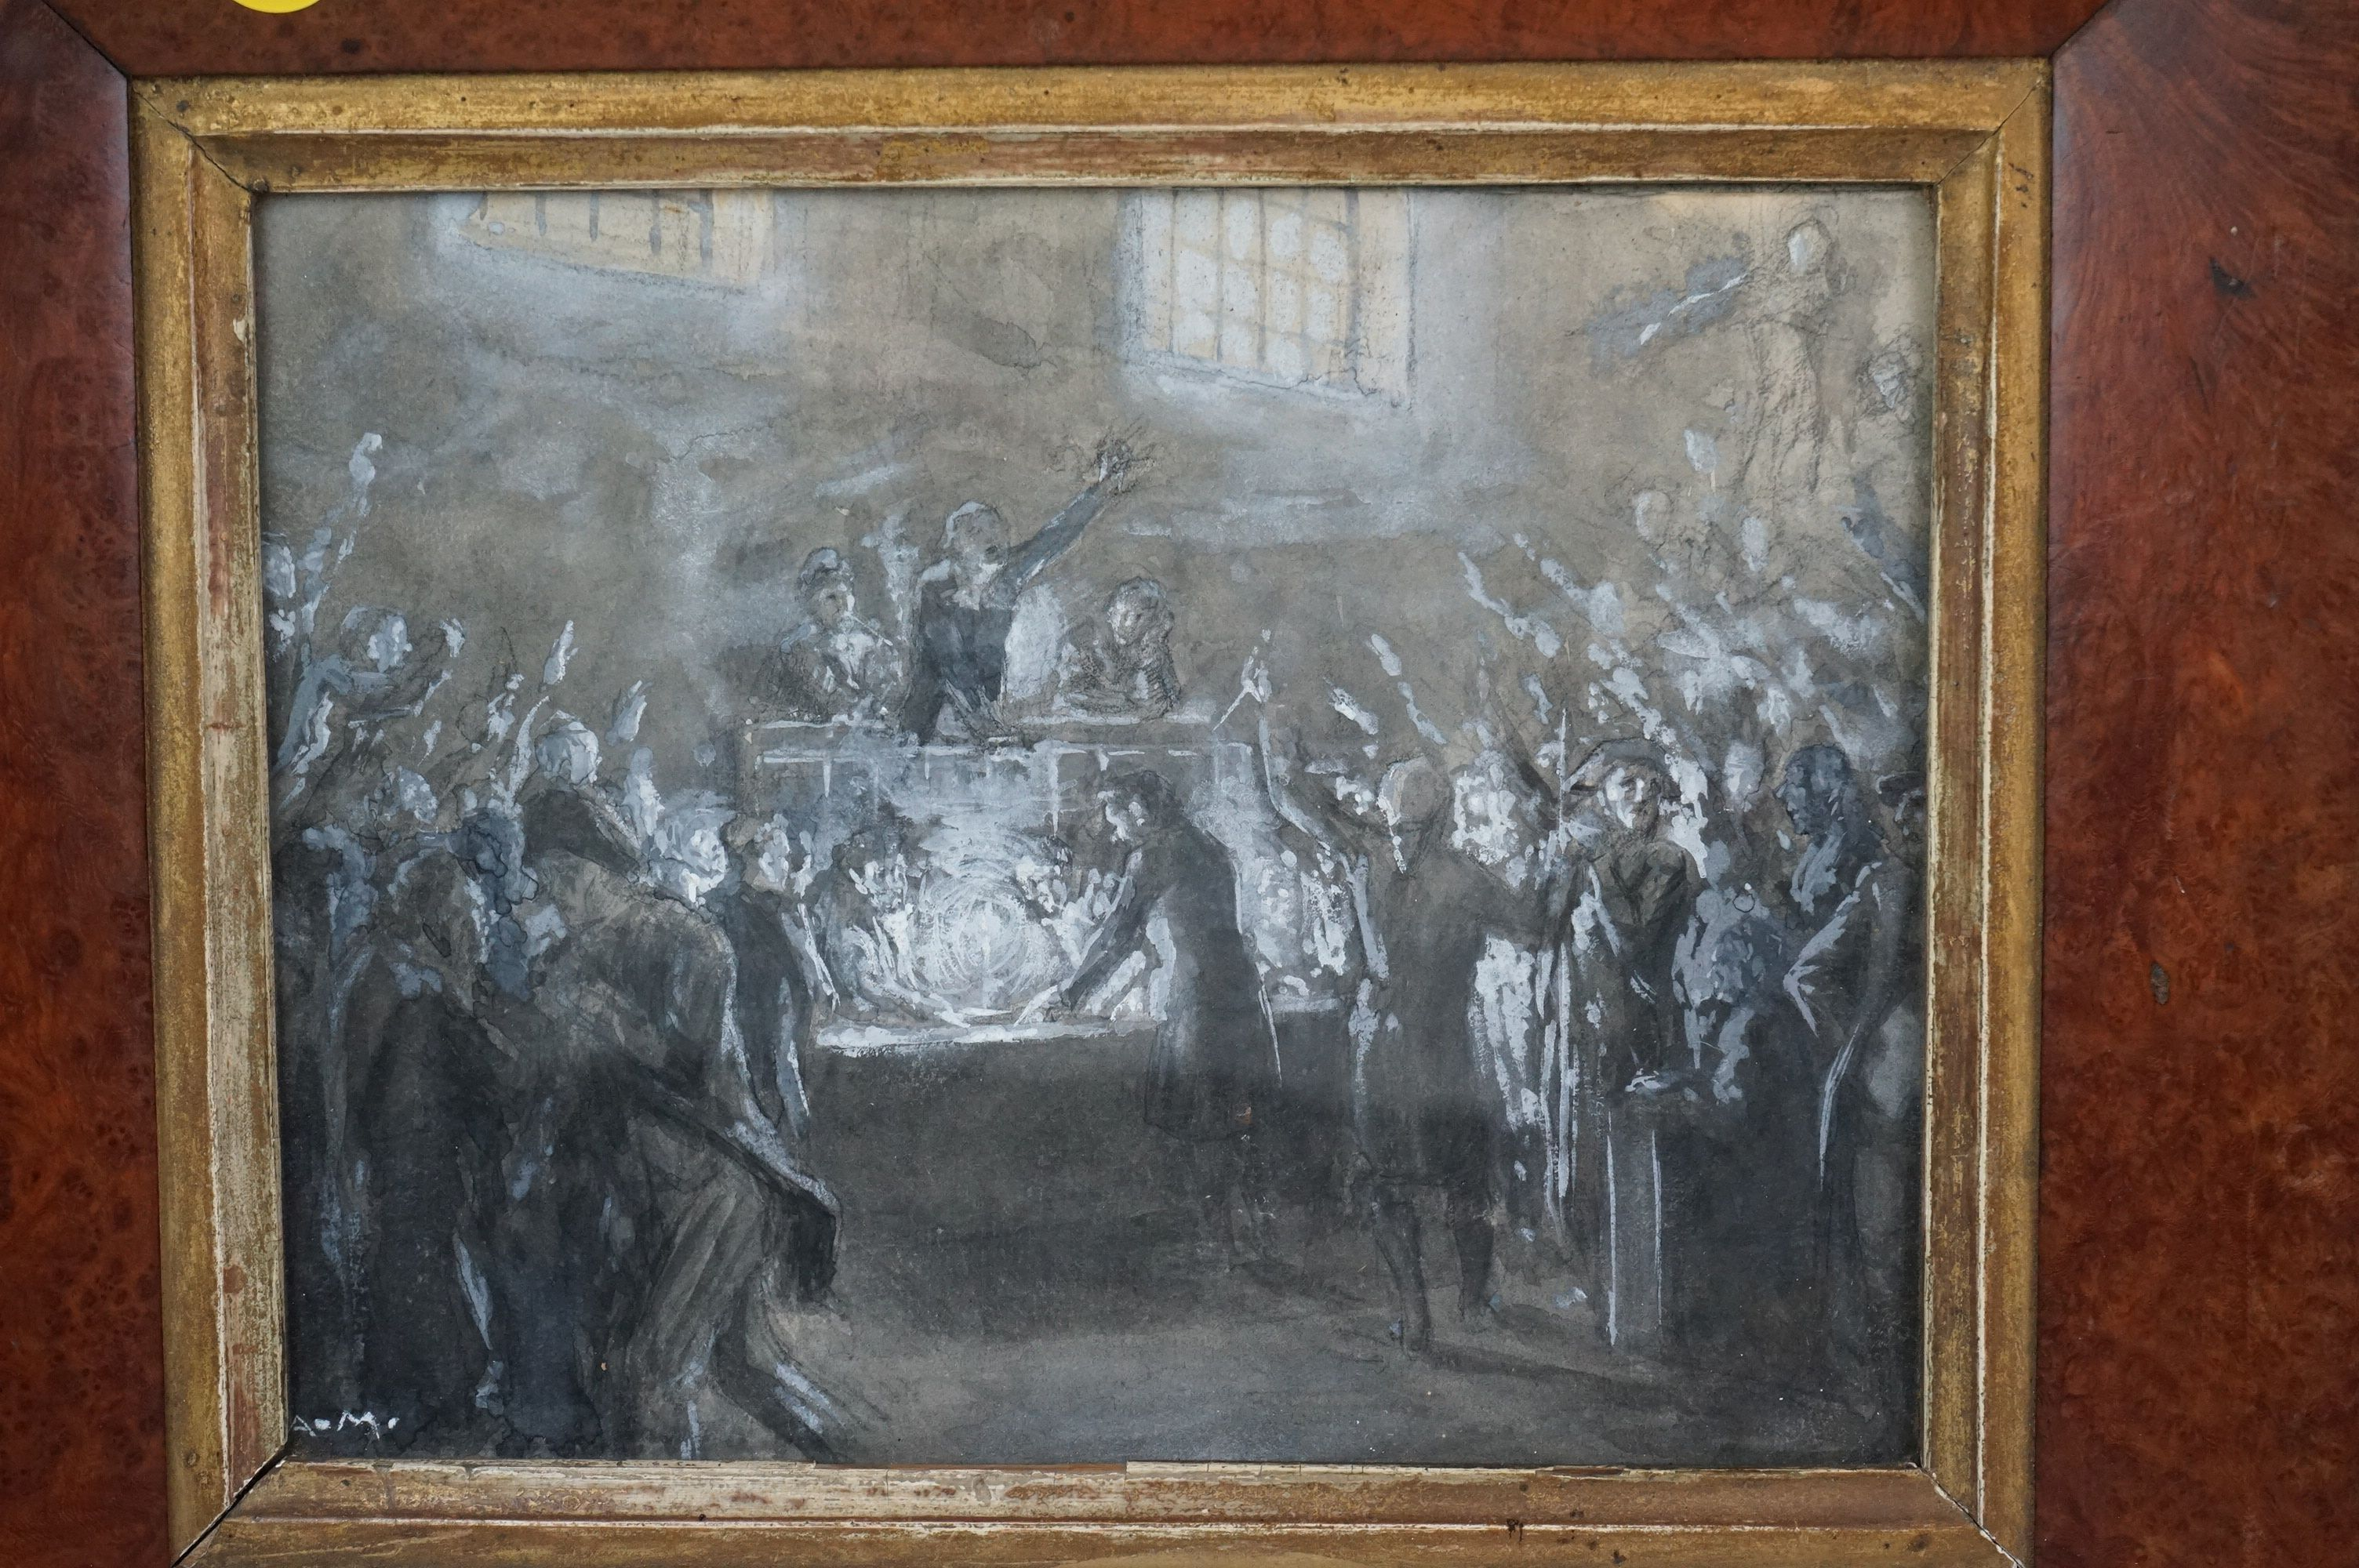 Watercolour of 19th century parliamentary figures casting a vote, possibly French - Image 2 of 5